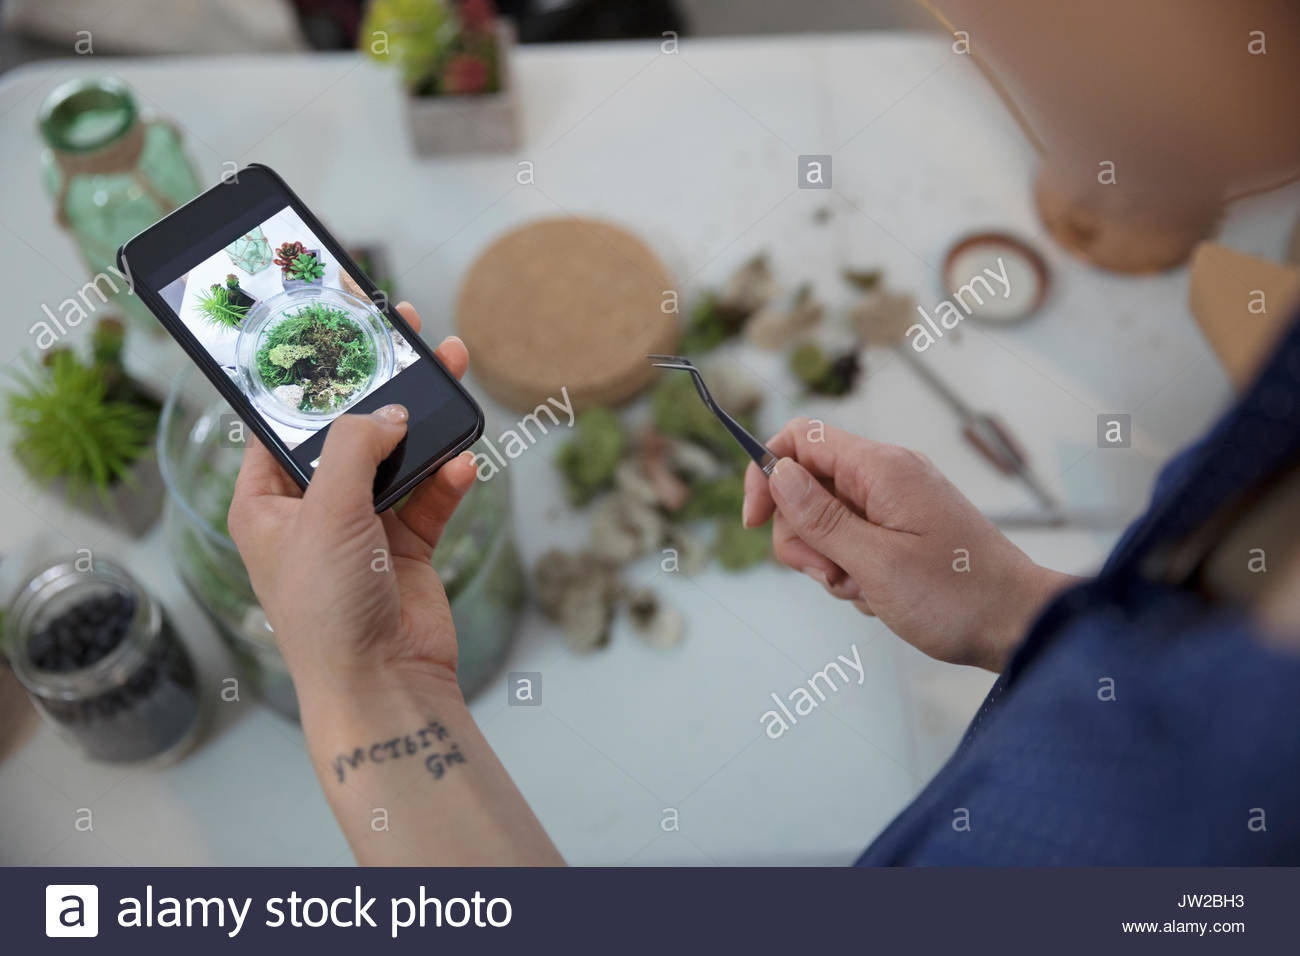 Woman with camera phone photographing and making plant terrarium - Stock Image